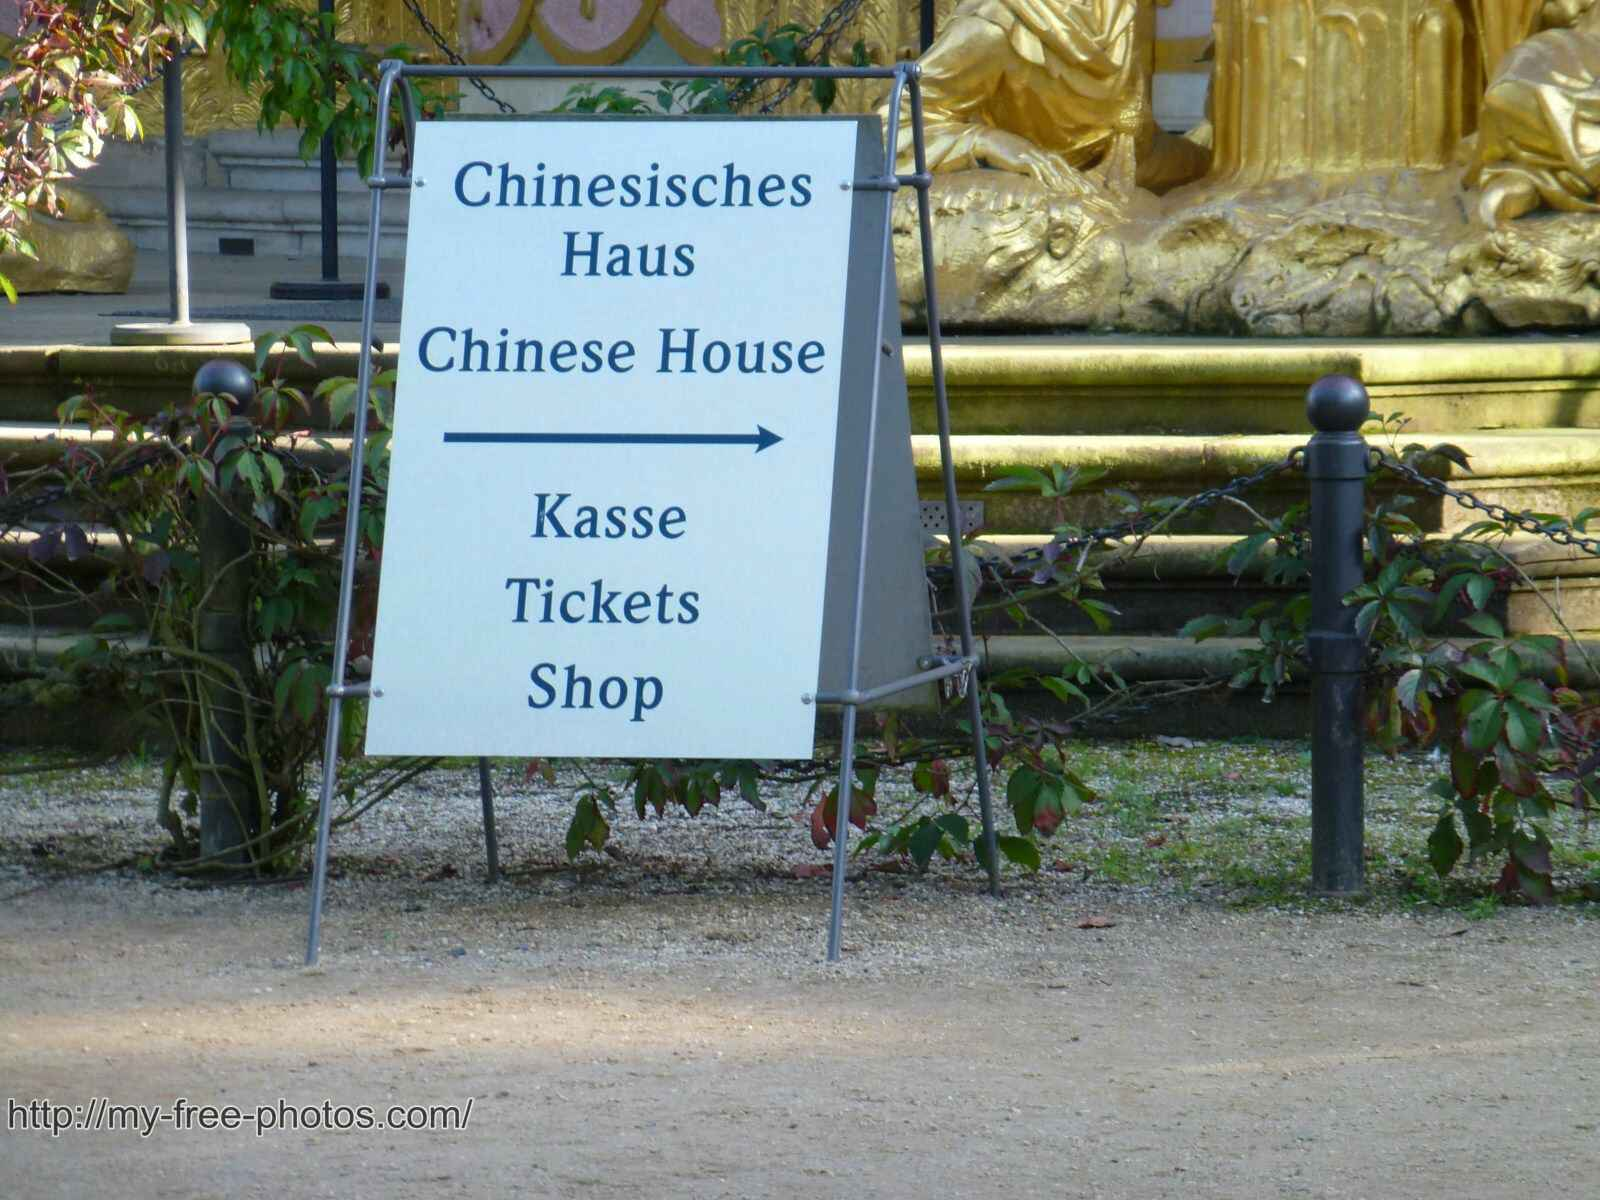 The Chinese House